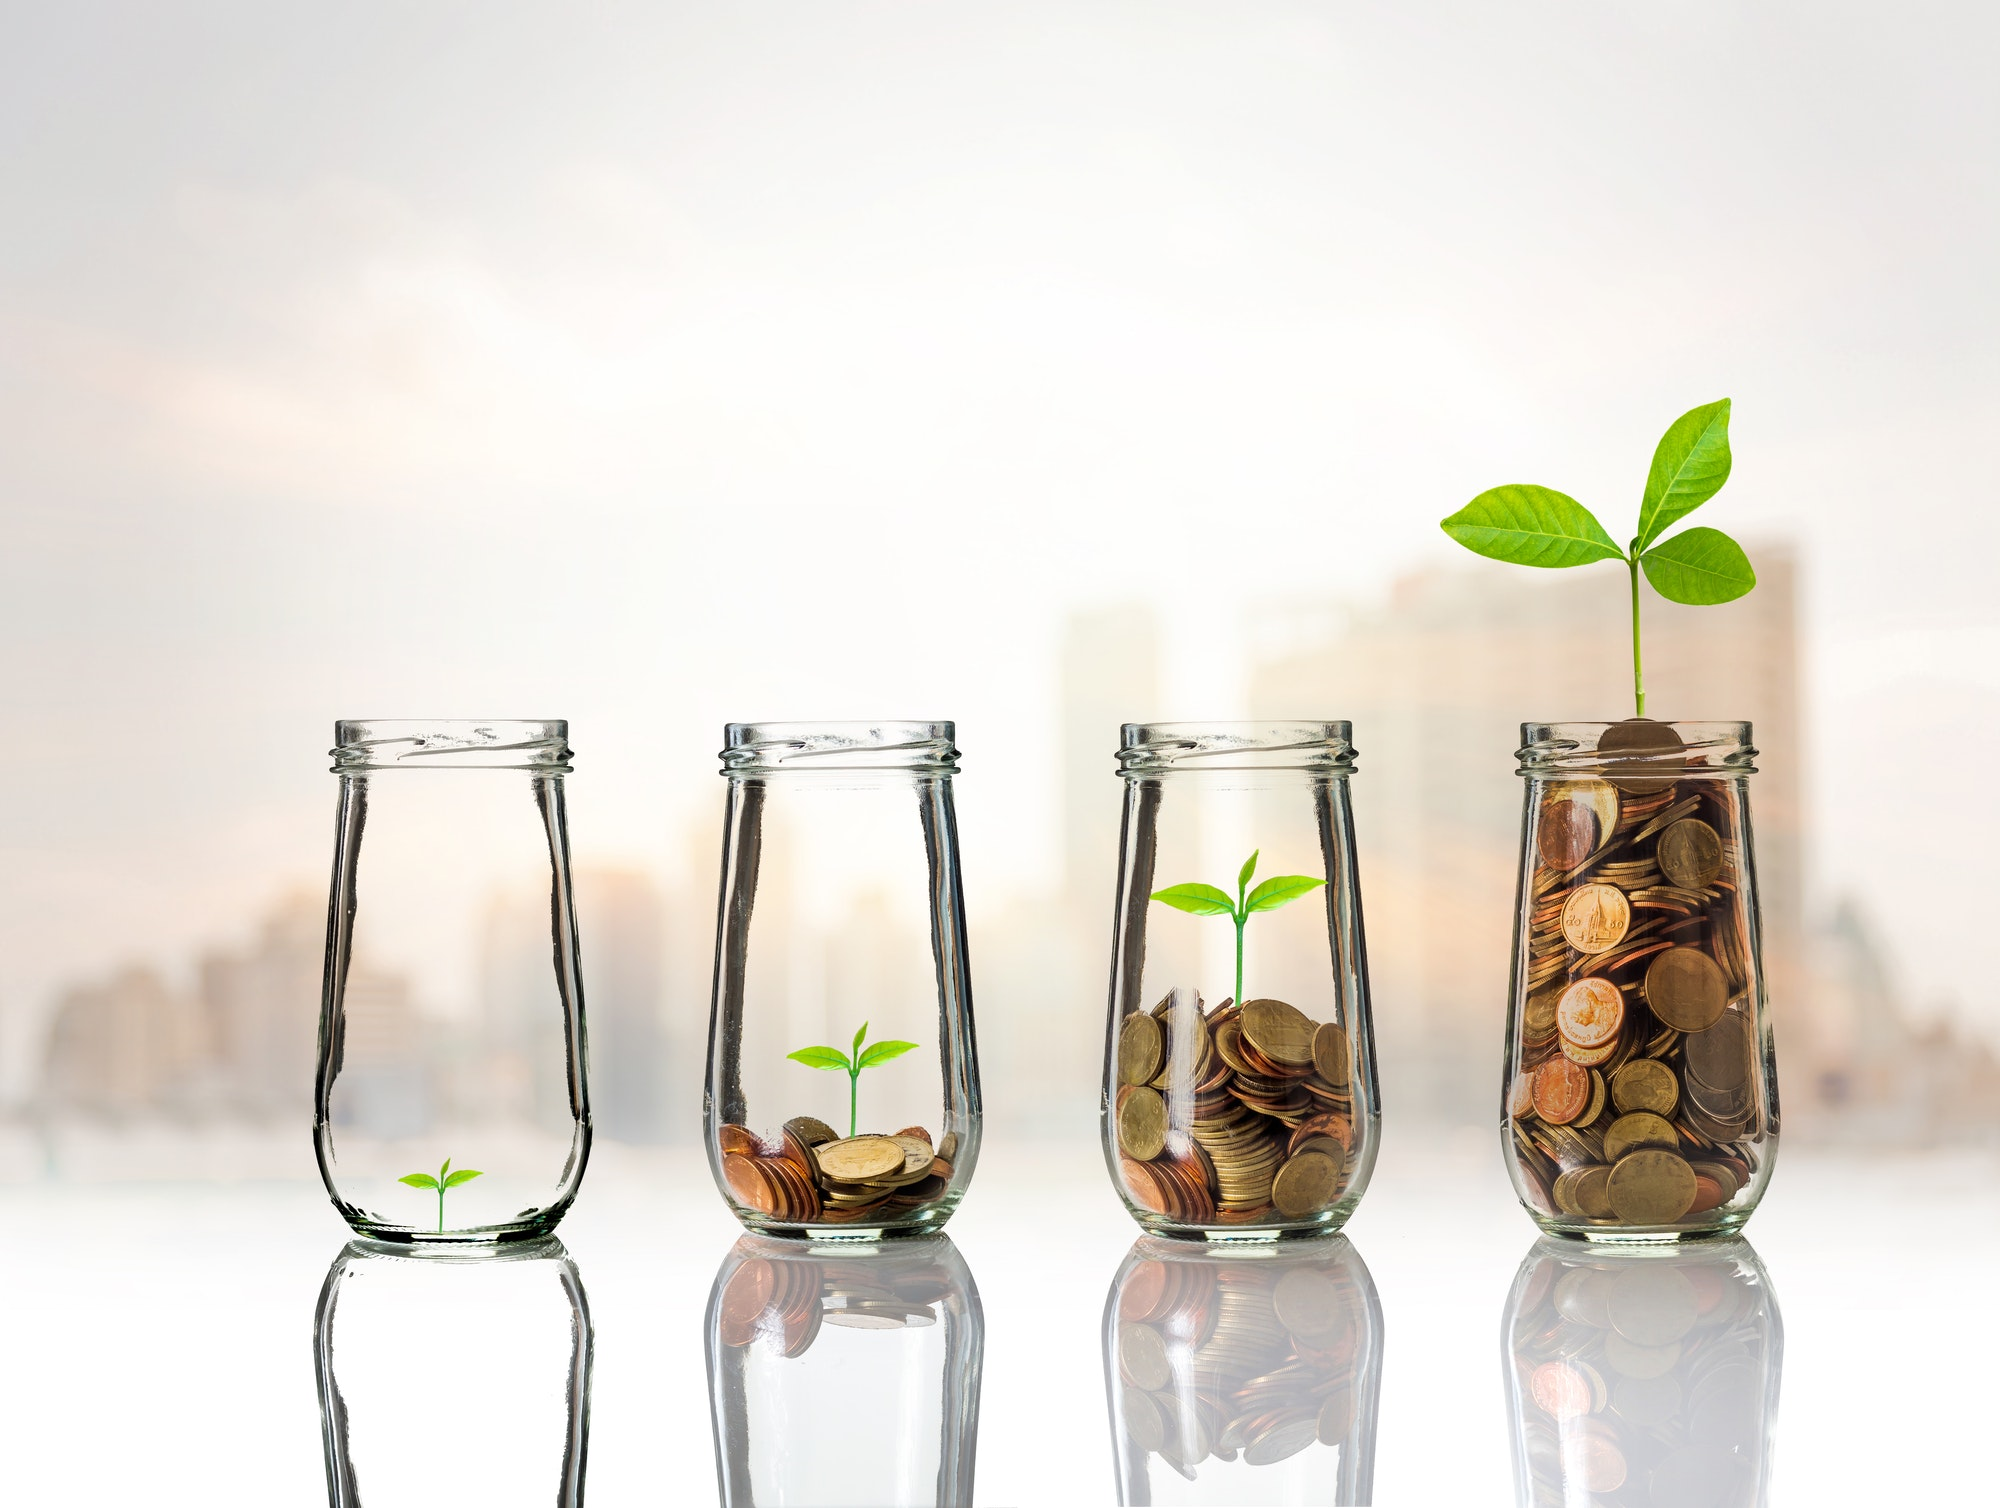 Gold coins and seed in clear bottle on cityscape photo blurred cityscape background